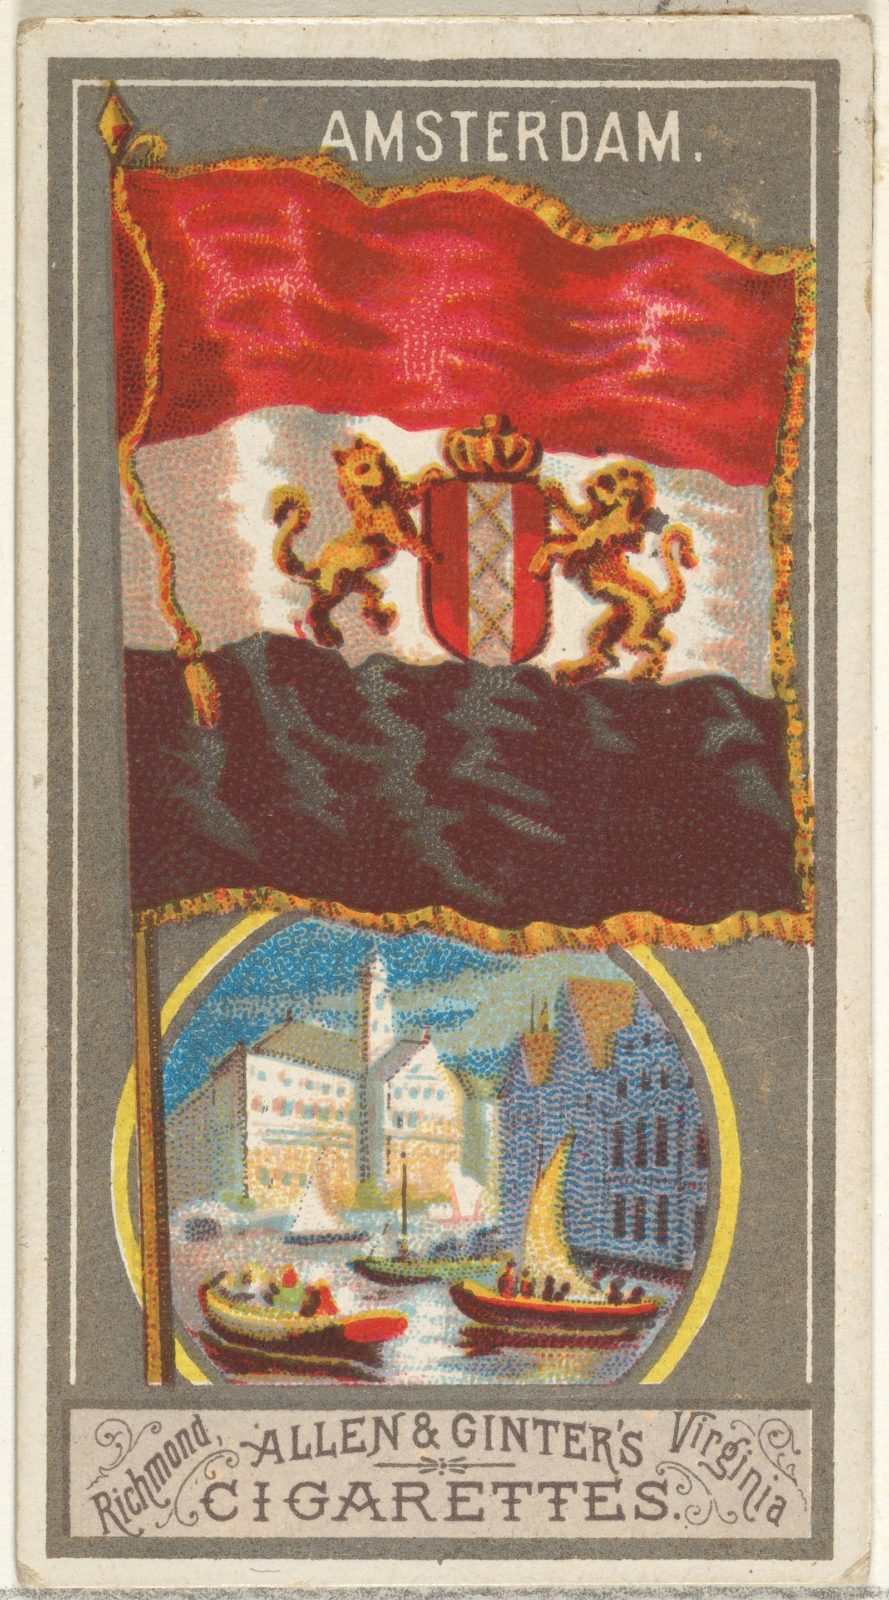 Amsterdam, from the City Flags series (N6) for Allen & Ginter Cigarettes Brands